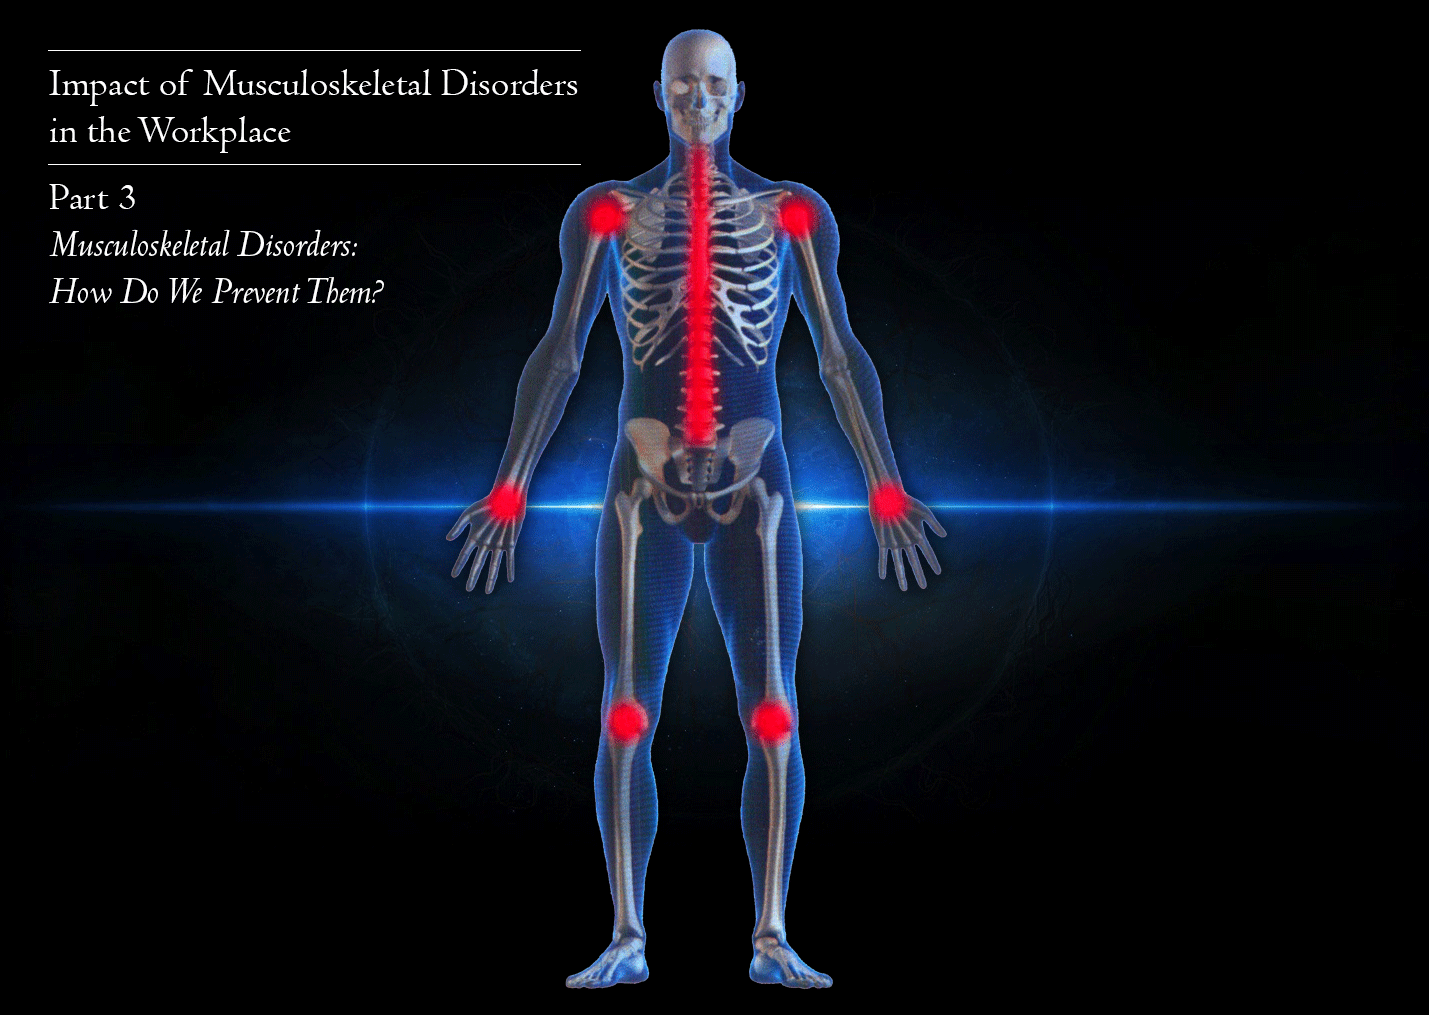 How Can Musculoskeletal Disorders be prevented in the Workplace?